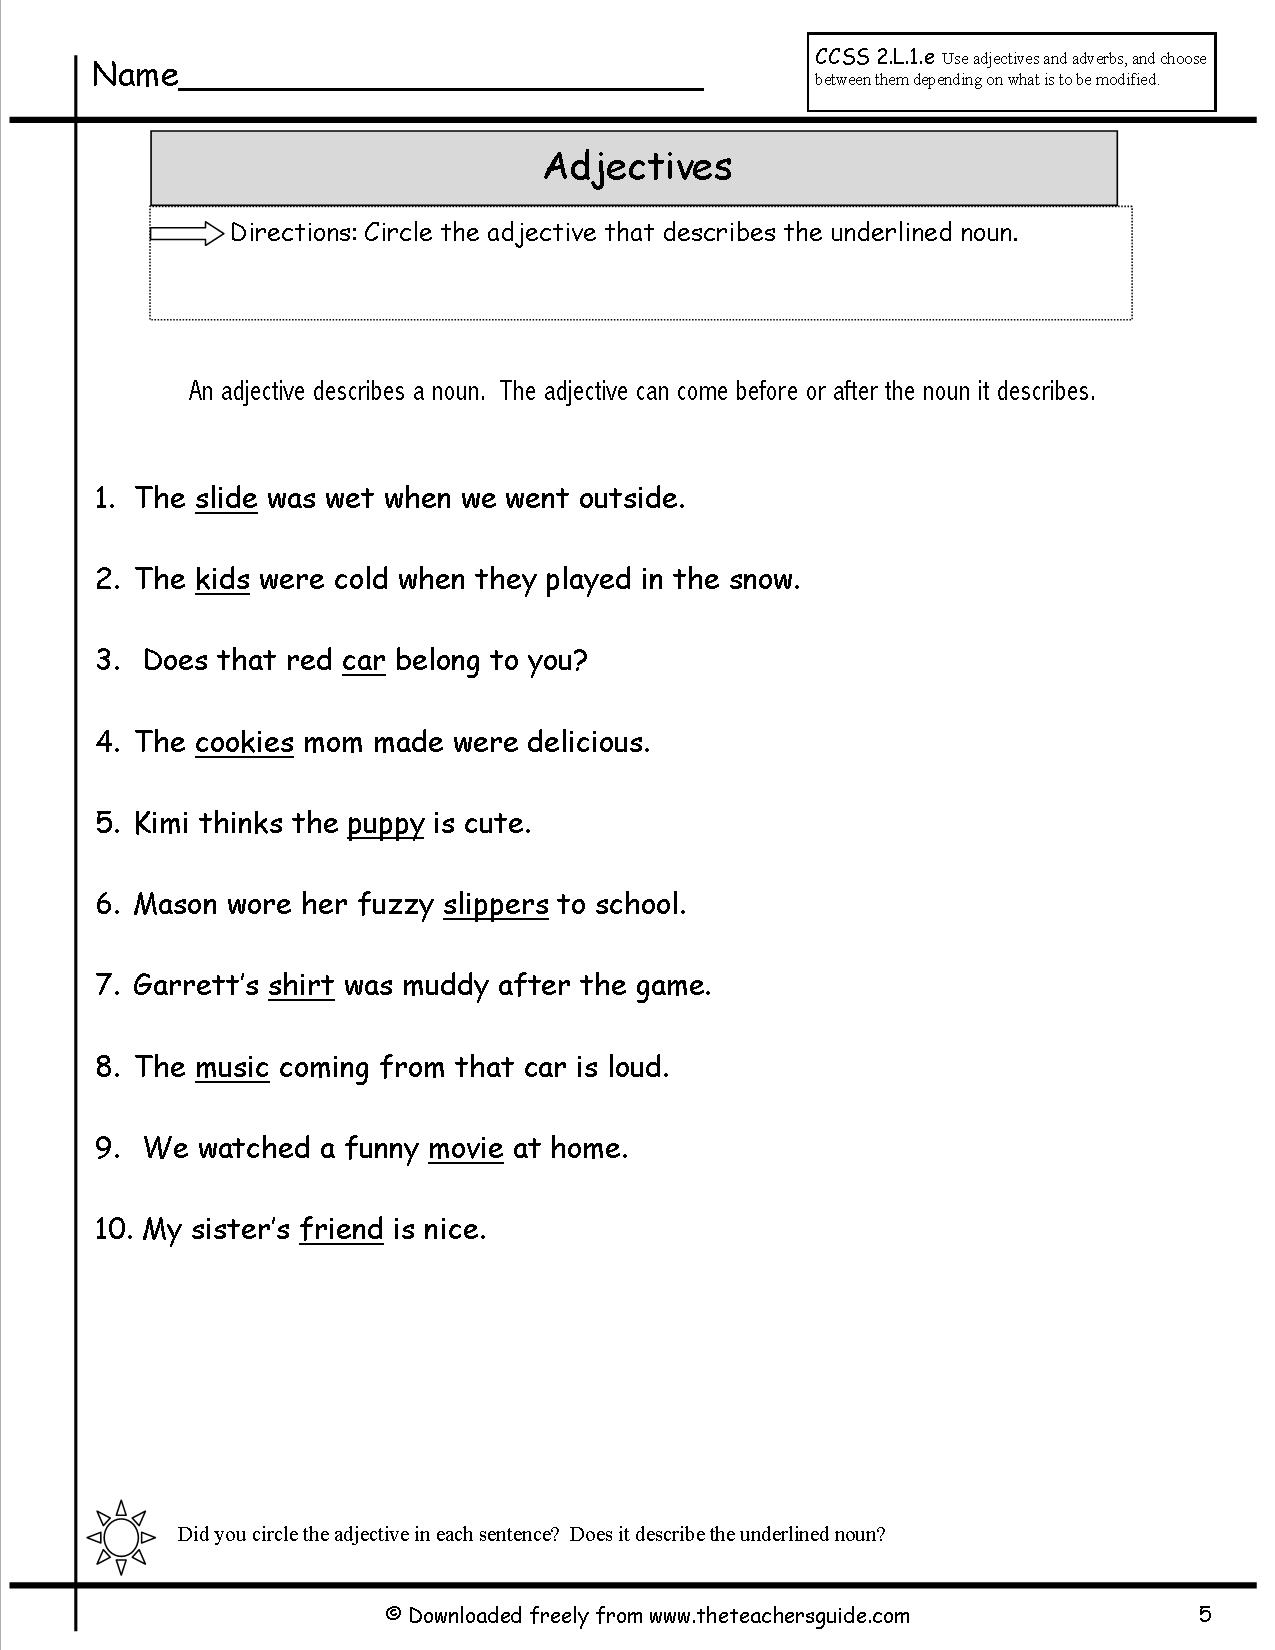 19 Best Images Of Fun Adjective Worksheets